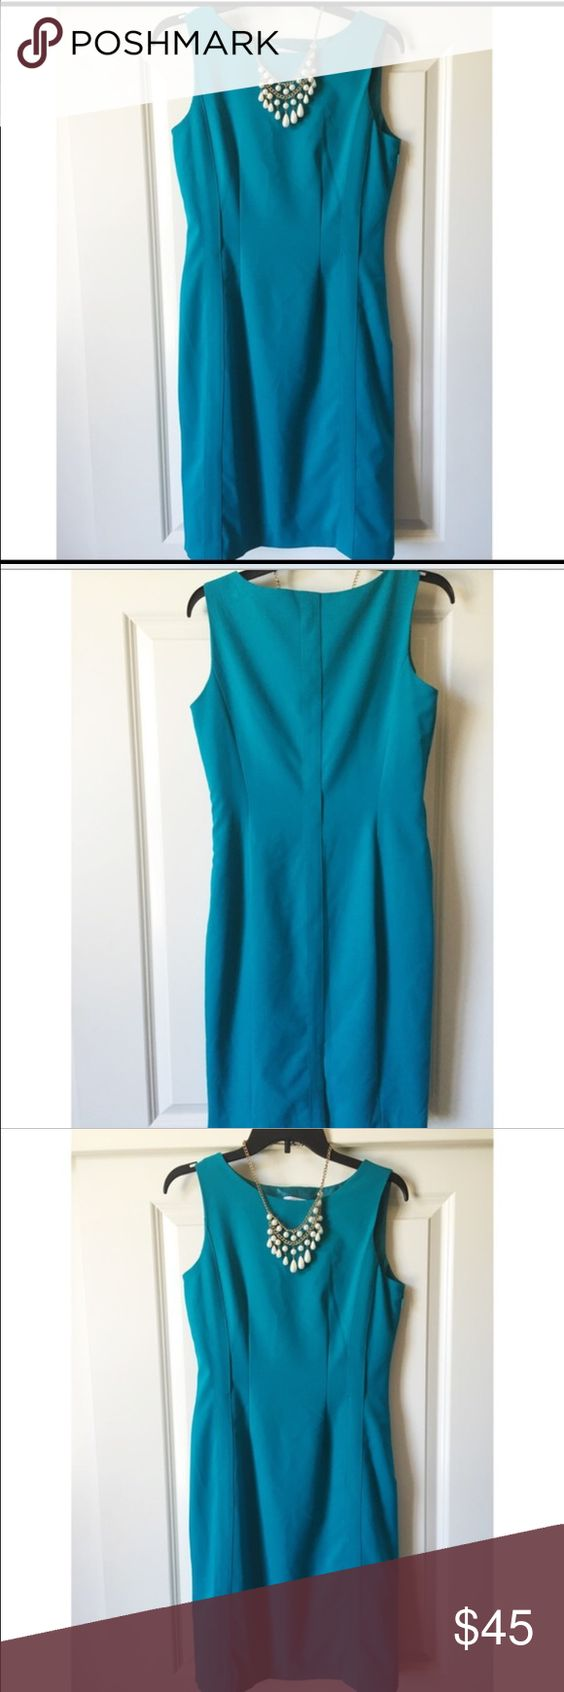 ✨Bright blue Calvin Klein dress✨ ✨Bright blue Calvin Klein dress with silk lining, zipper on side, and loops for optional belt. Must have!!!✨ Calvin Klein Dresses